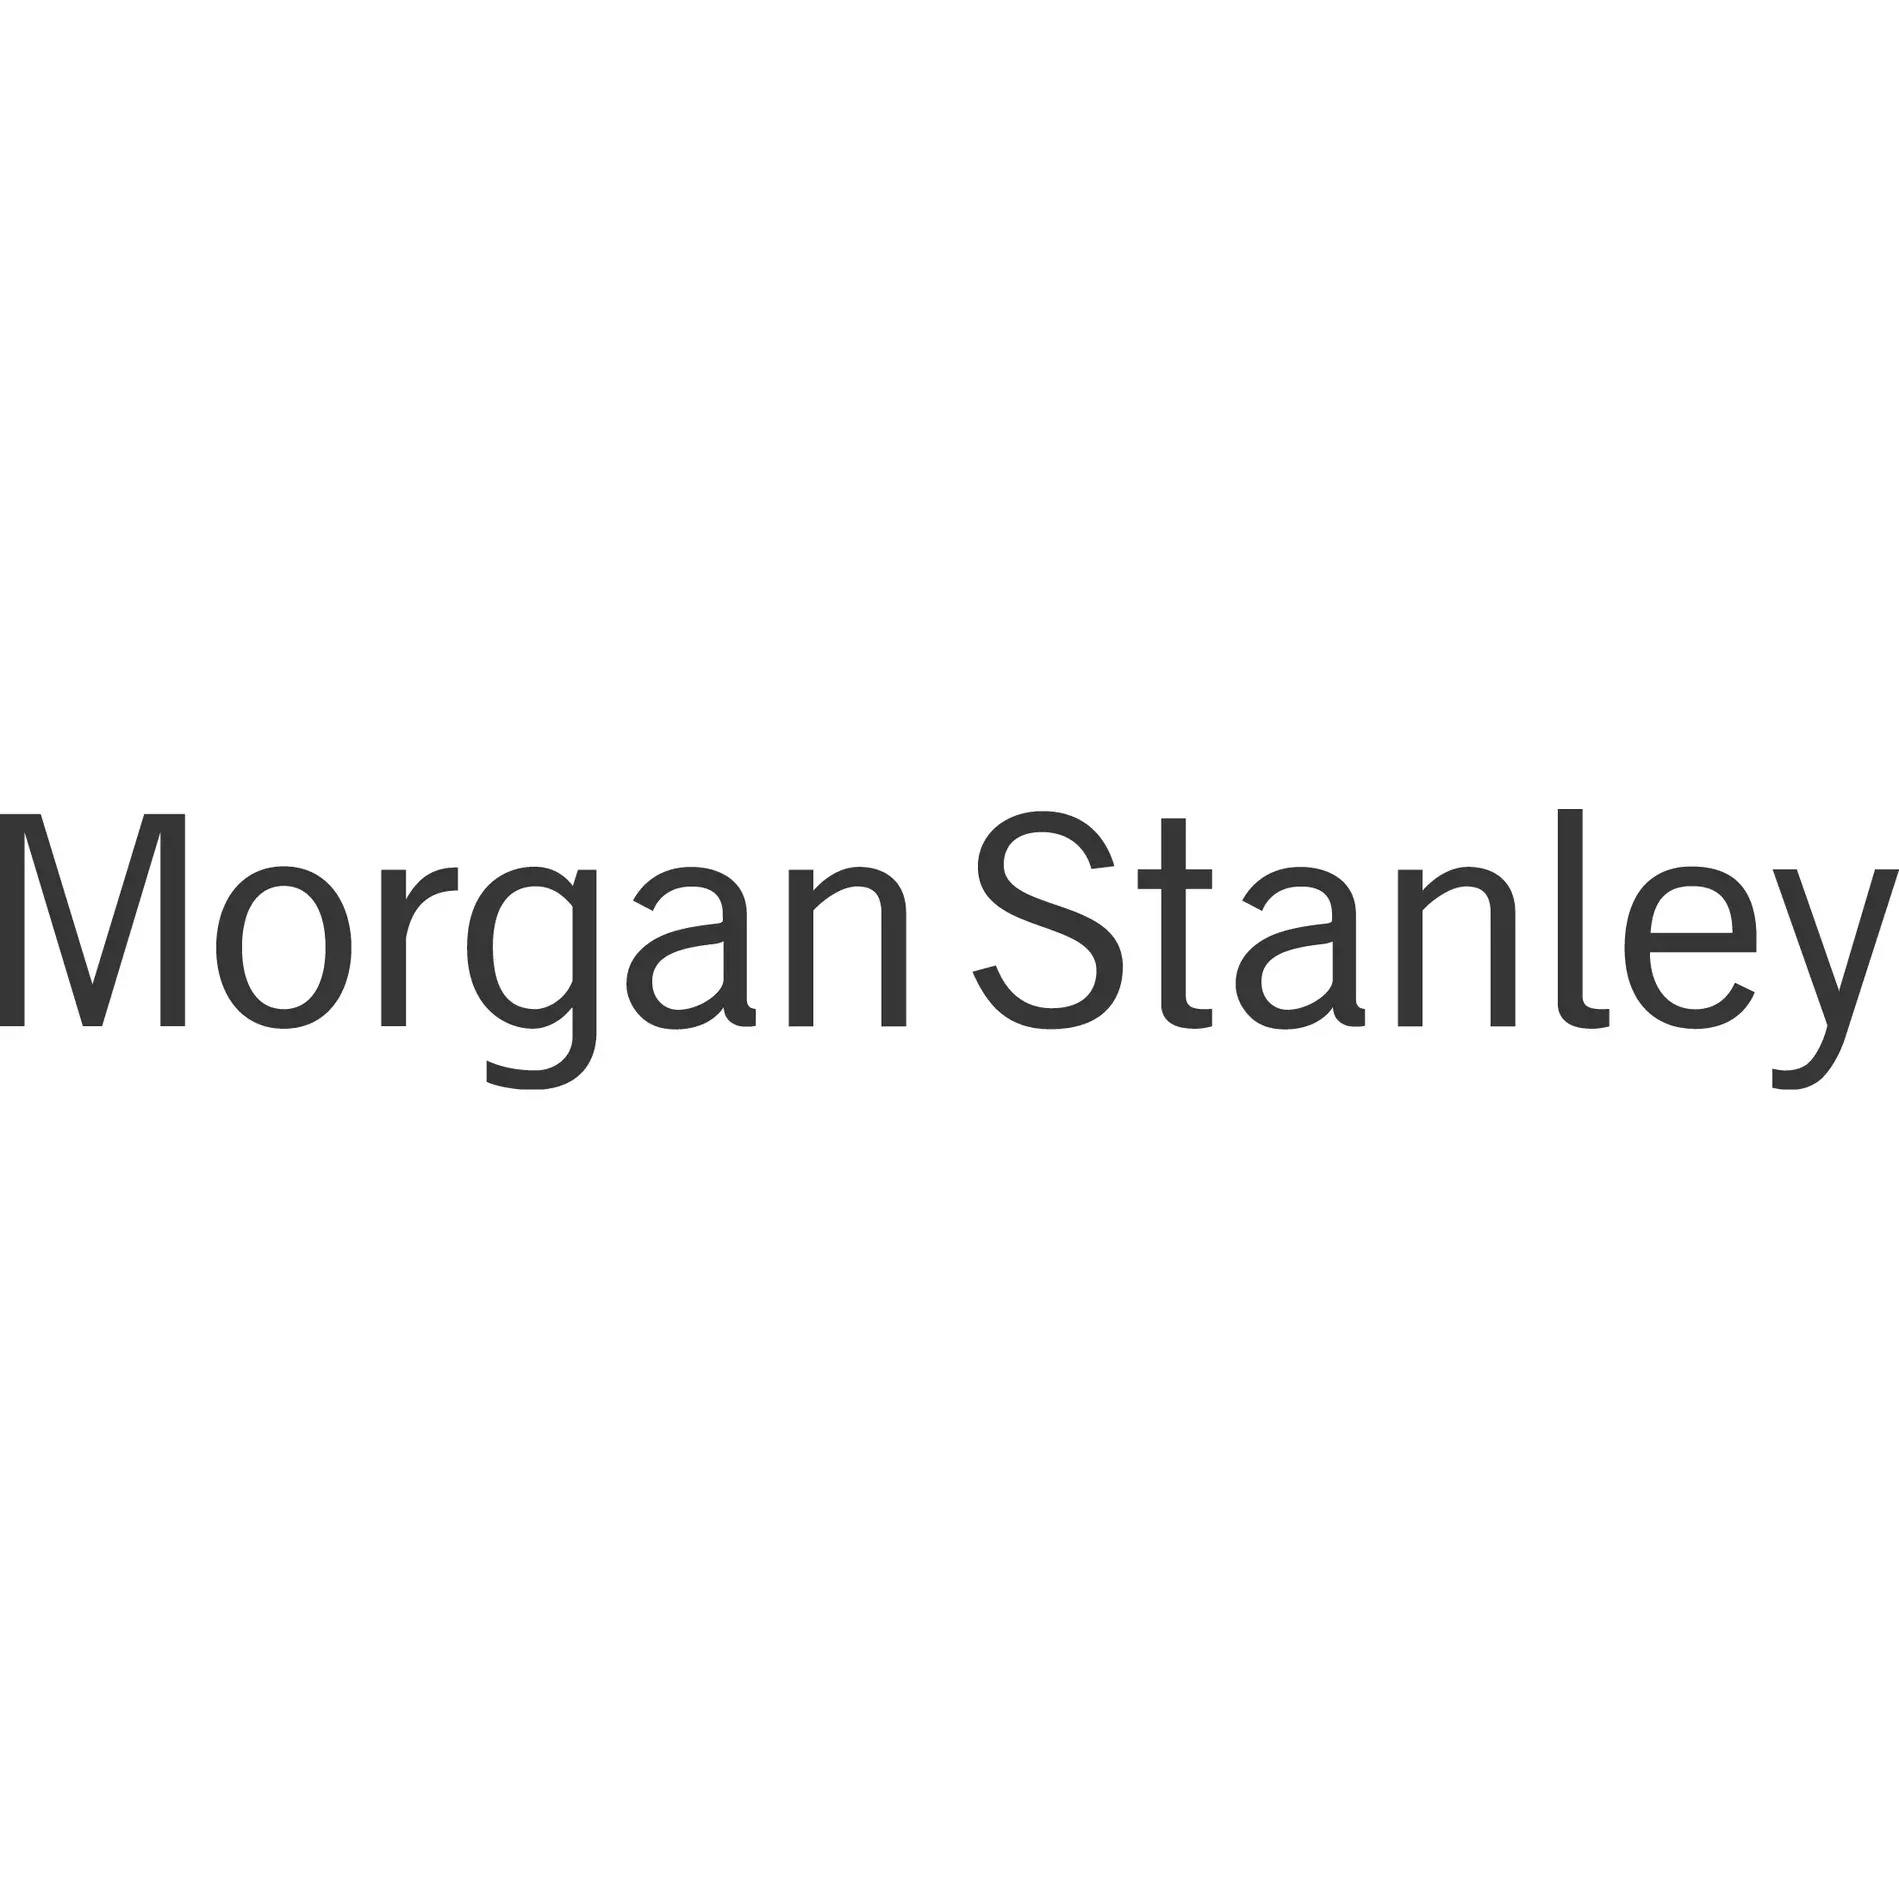 Ryan Banning - Morgan Stanley | Financial Advisor in Irvine,California